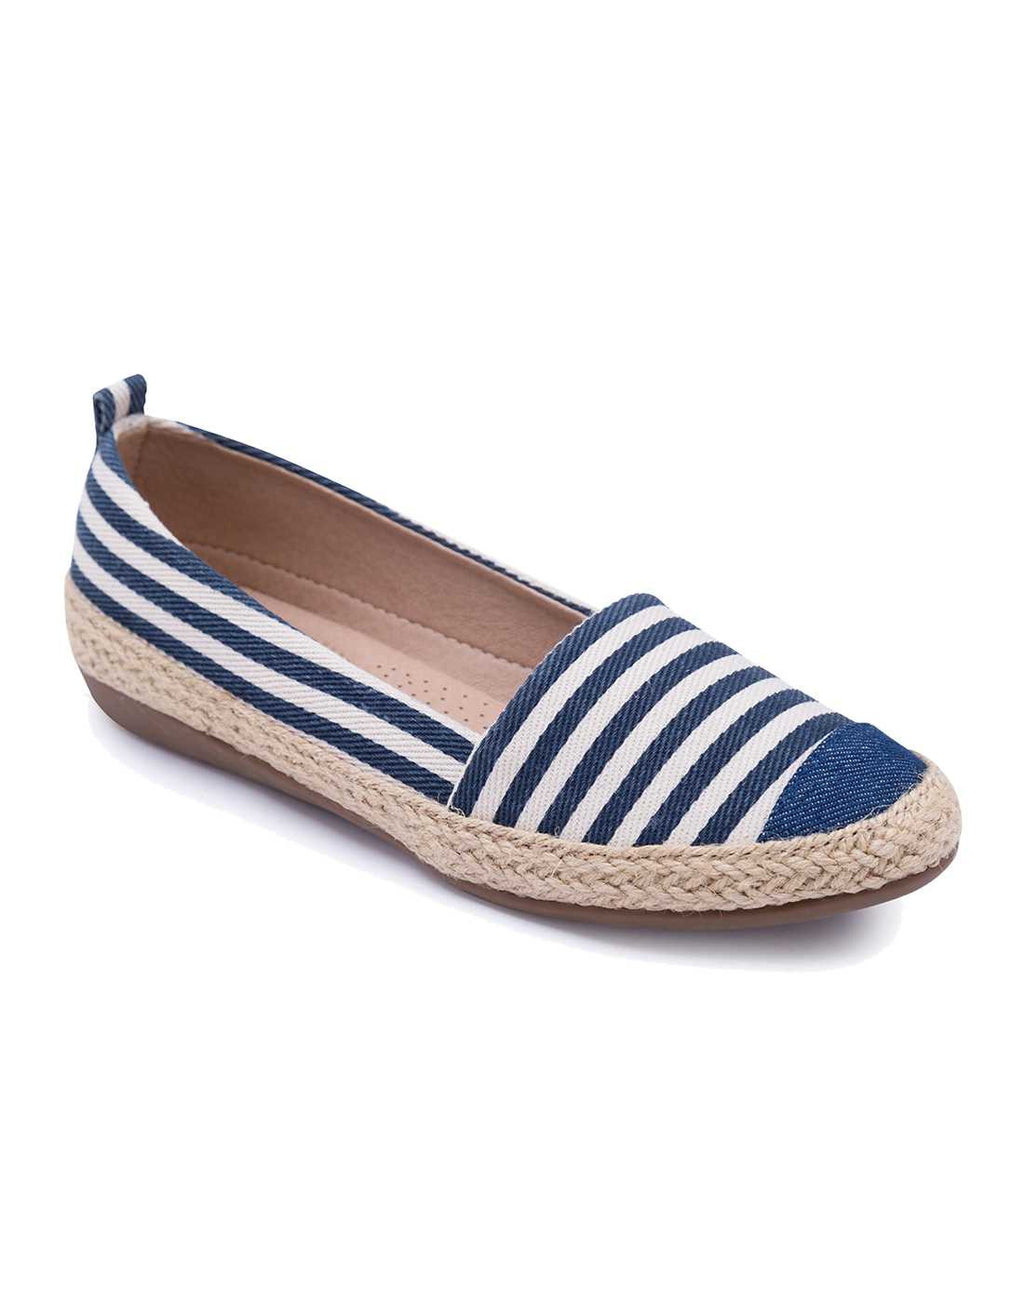 Navy Blue and White Striped Espadrilles